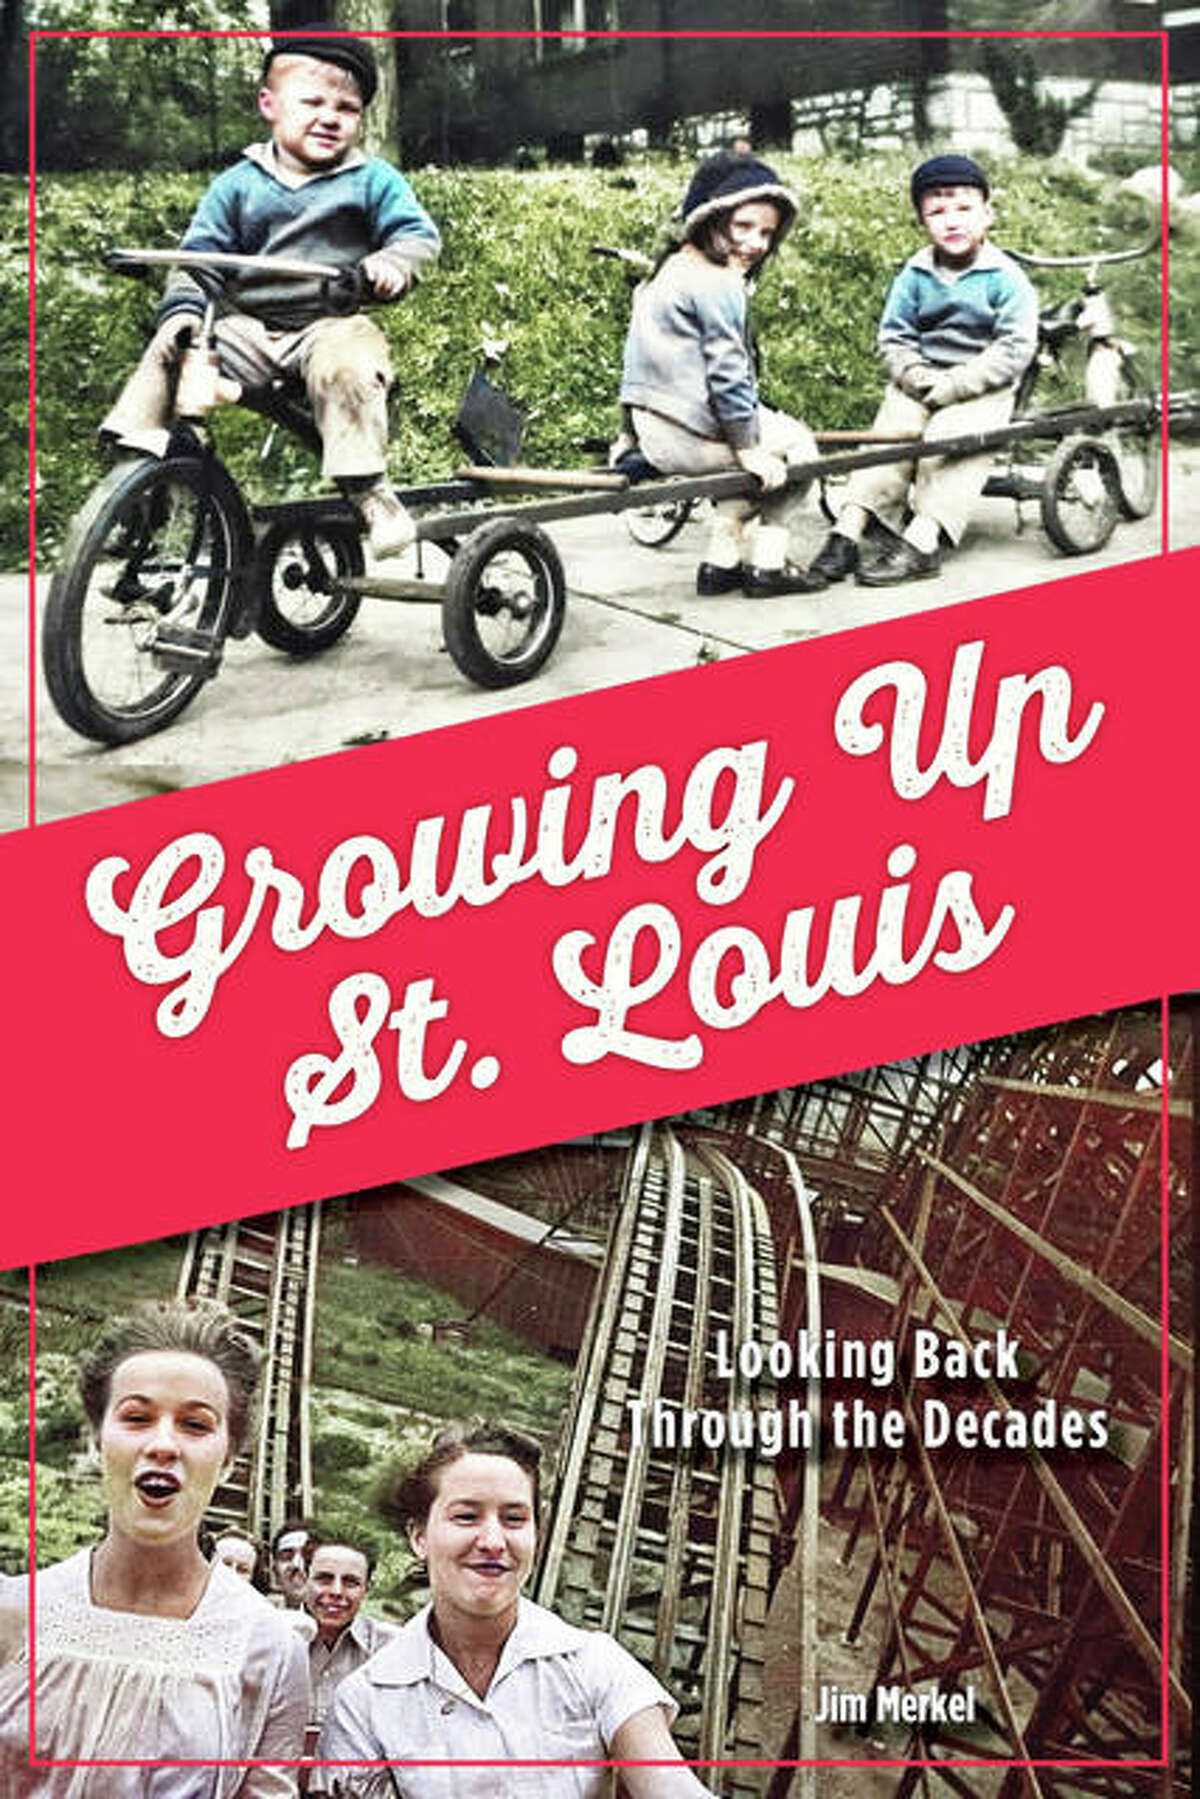 """""""Growing Up St. Louis: Looking Back Through the Decades,"""" by Jim Merkel, is available wherever fine books are sold and autographed copies are available at the author's website, www.jimmerkelthewriter.com. The book's ISBN is 9781681062549 and sells for $20.95. It can also be ordered by calling 314-833-6600, faxing 866-999-6916 or emailing books@reedypress.com."""